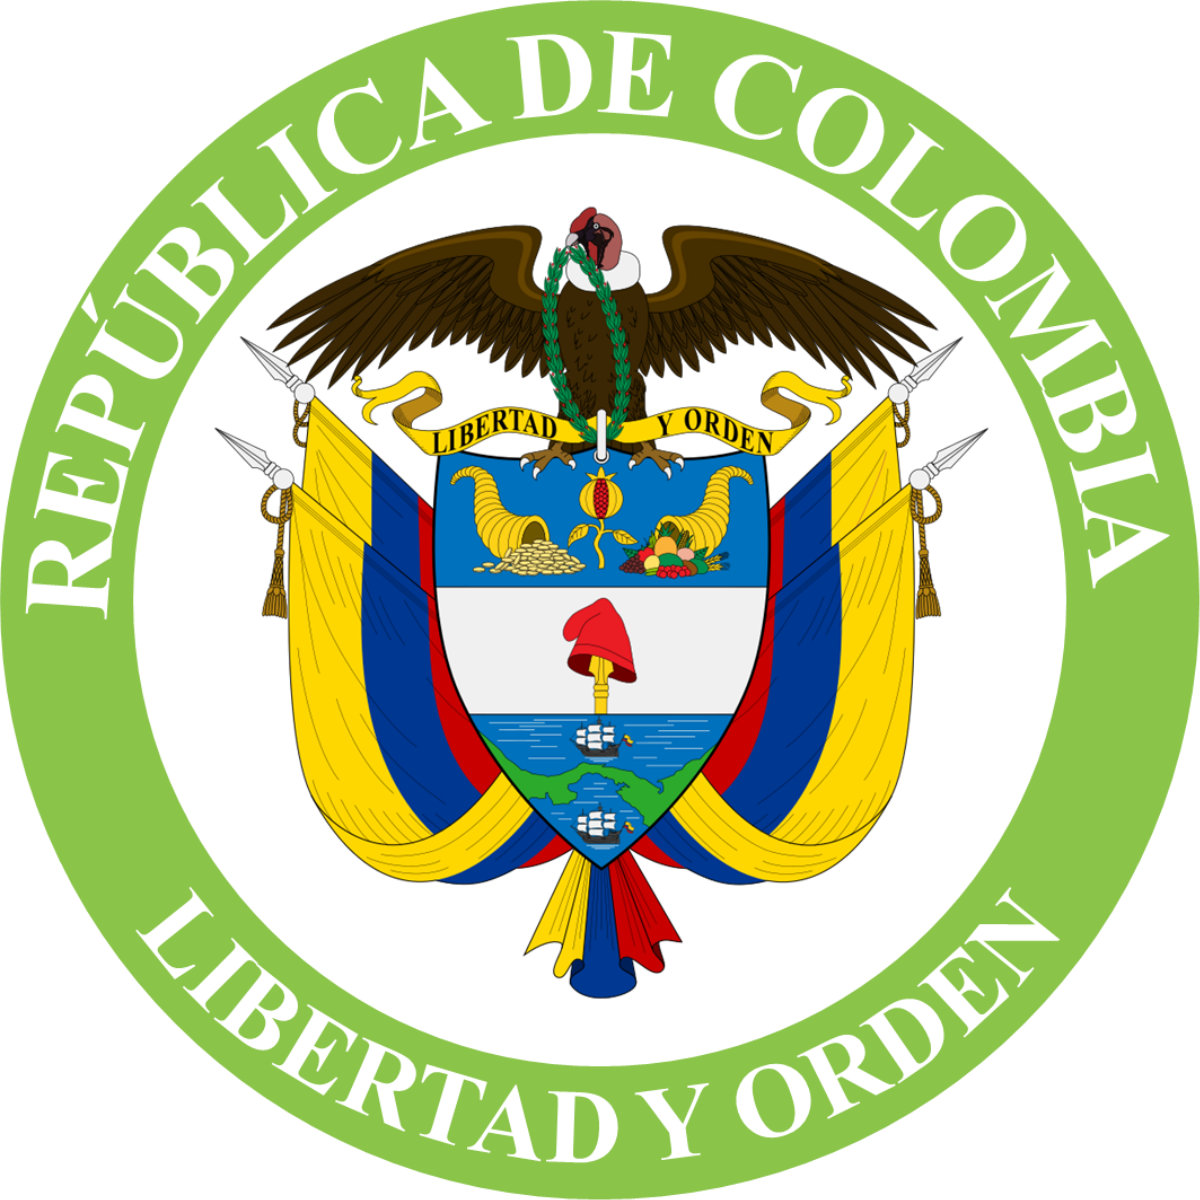 Ministry of Transport (Colombia).